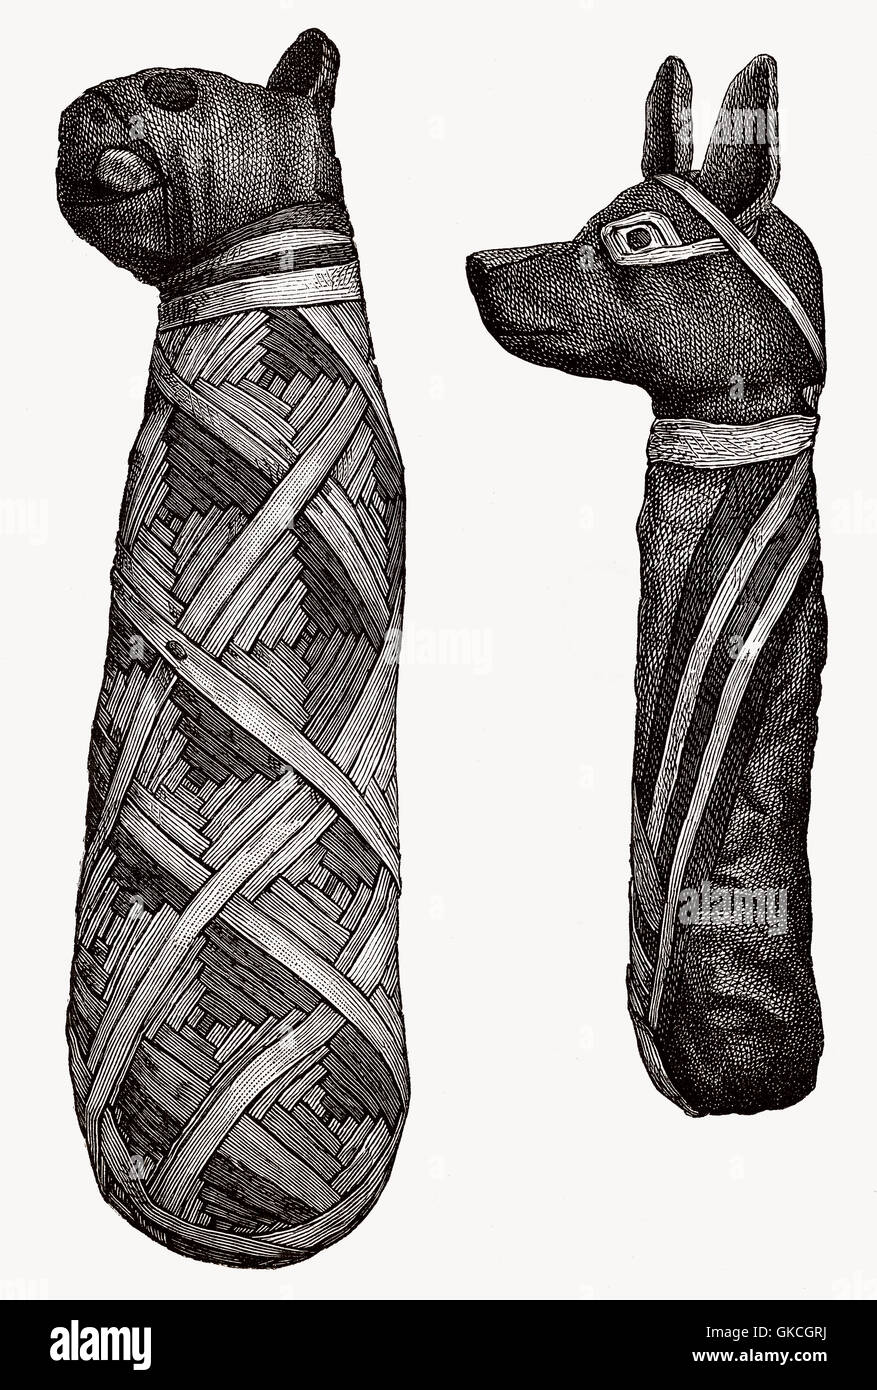 Mummies of animals, ancient Egypt, illustration from the 19th century - Stock Image